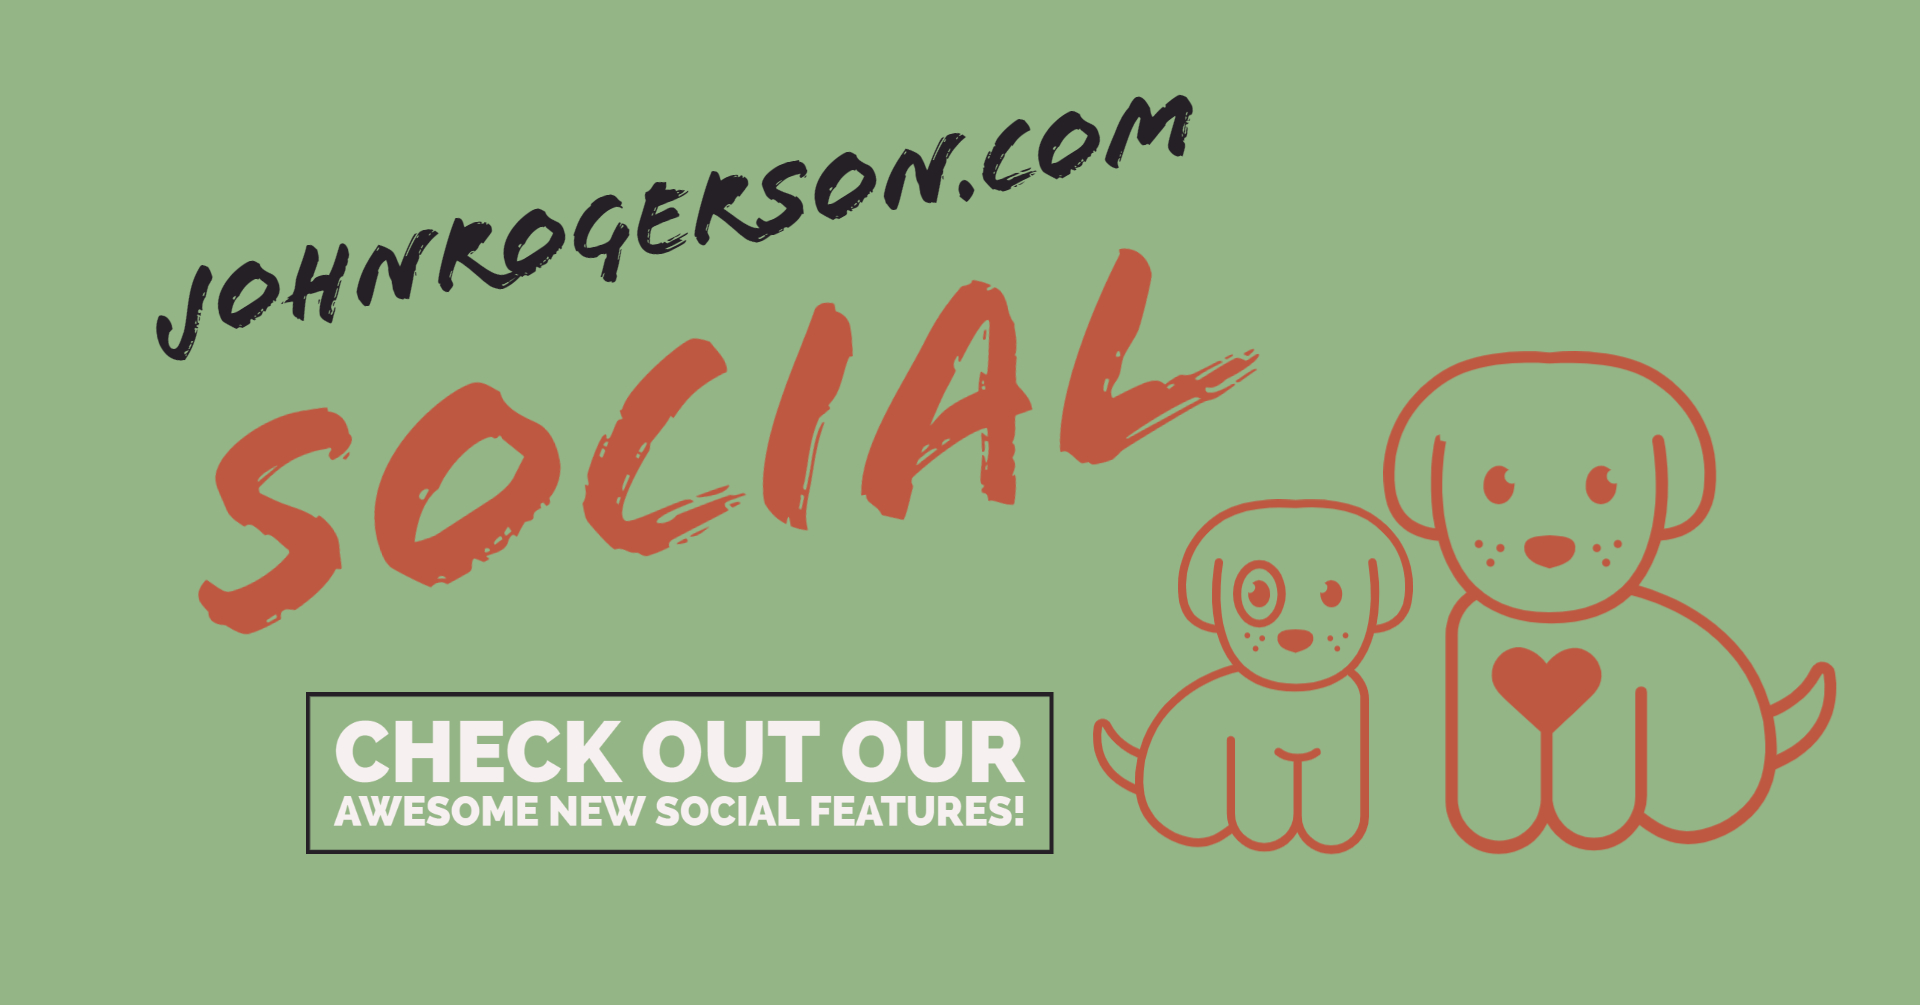 You are currently viewing John Rogerson Social